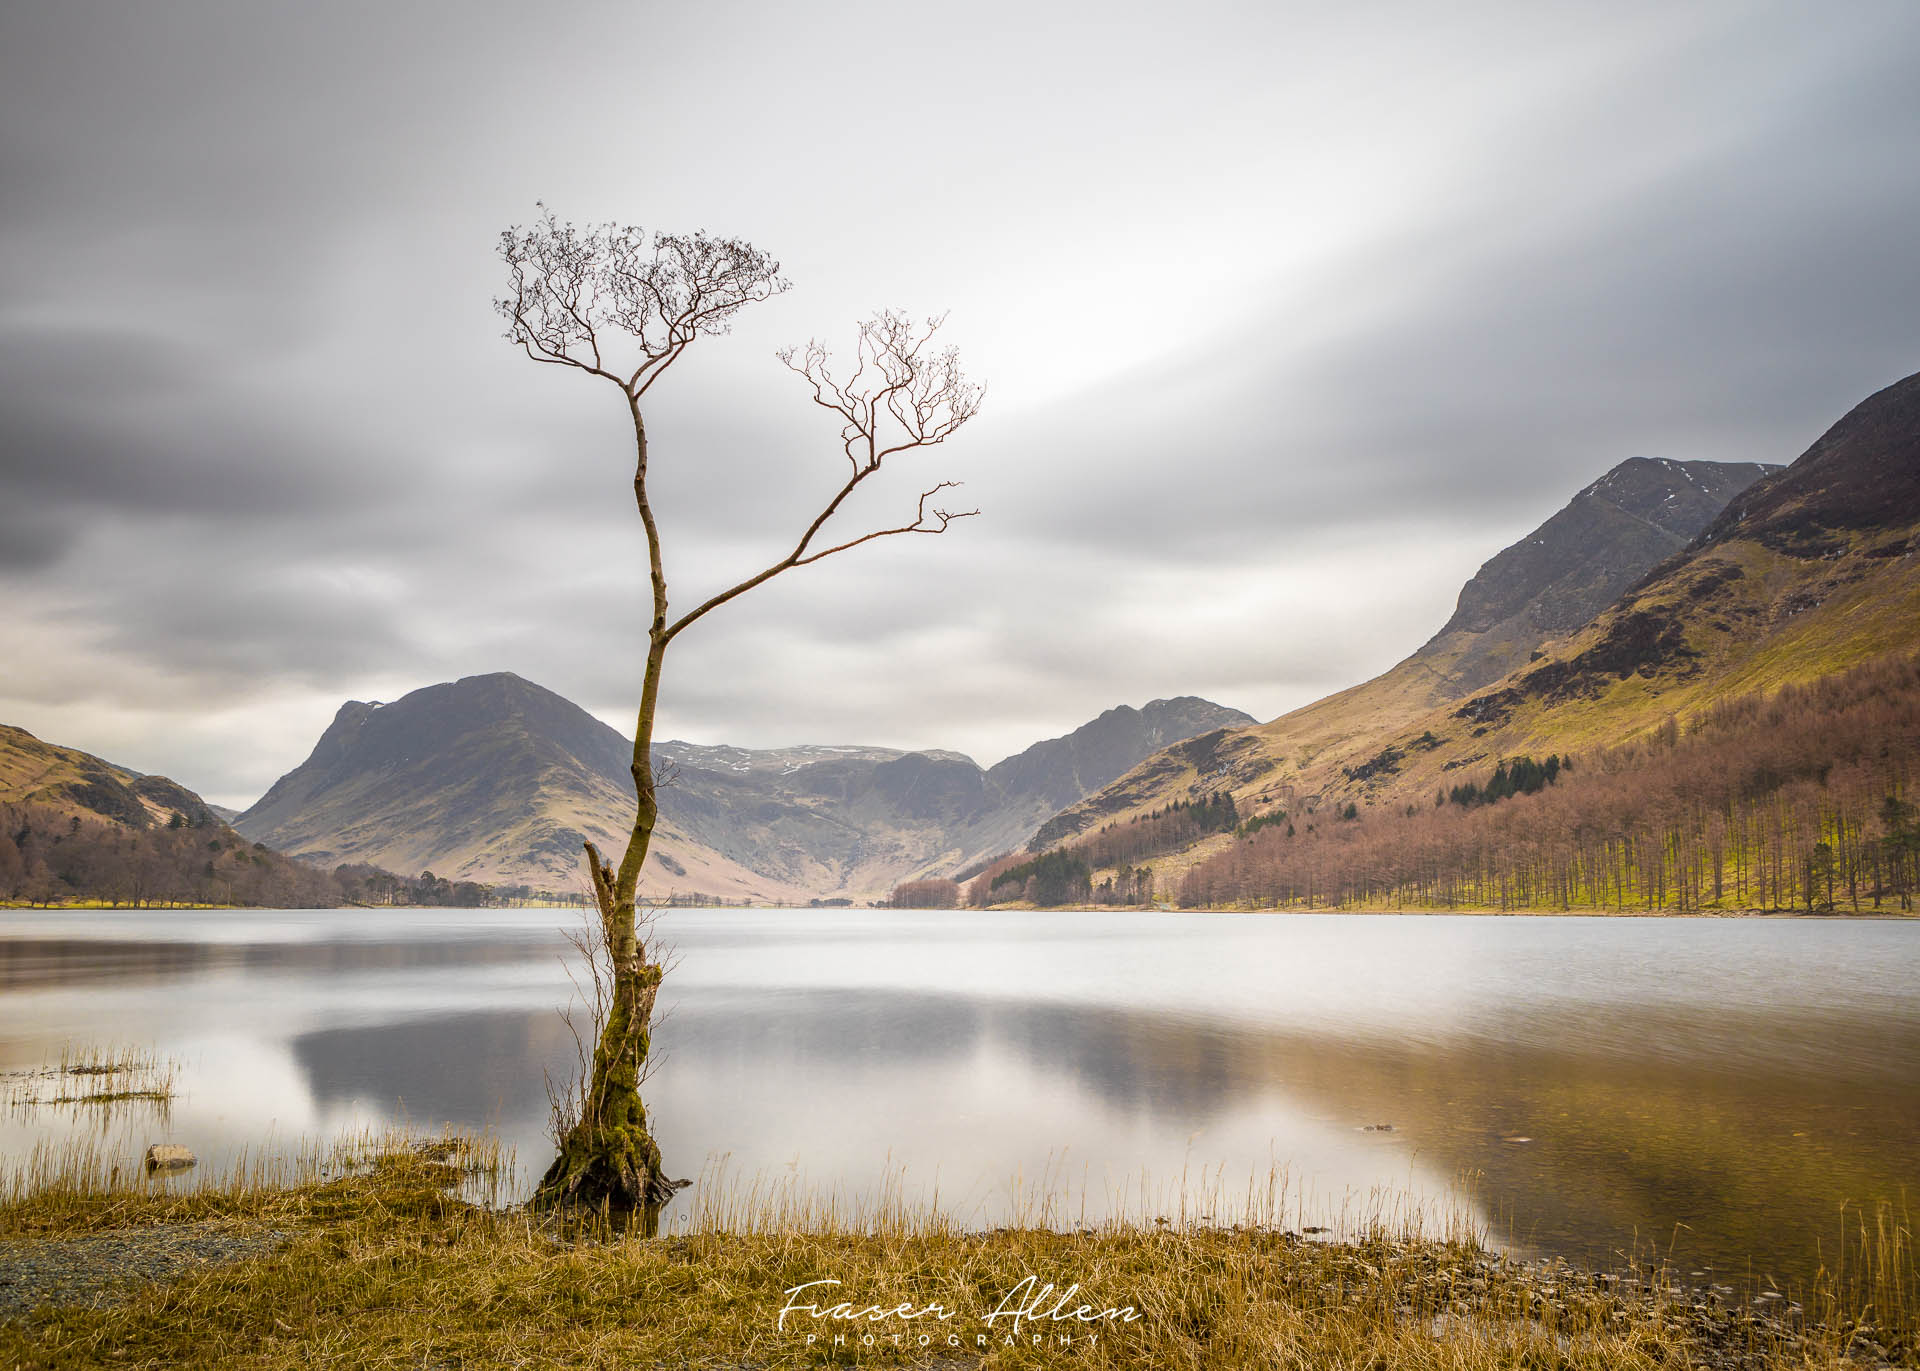 The Lone Tree at Buttermere